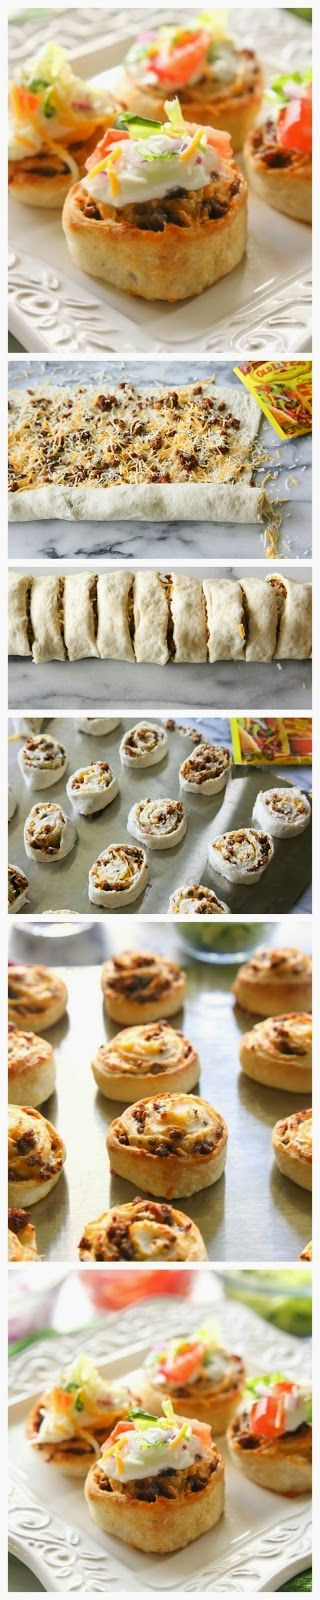 Taco Pizza Rolls - they look kinda gross put the display with the sour cream and tomatoes on top look delish!